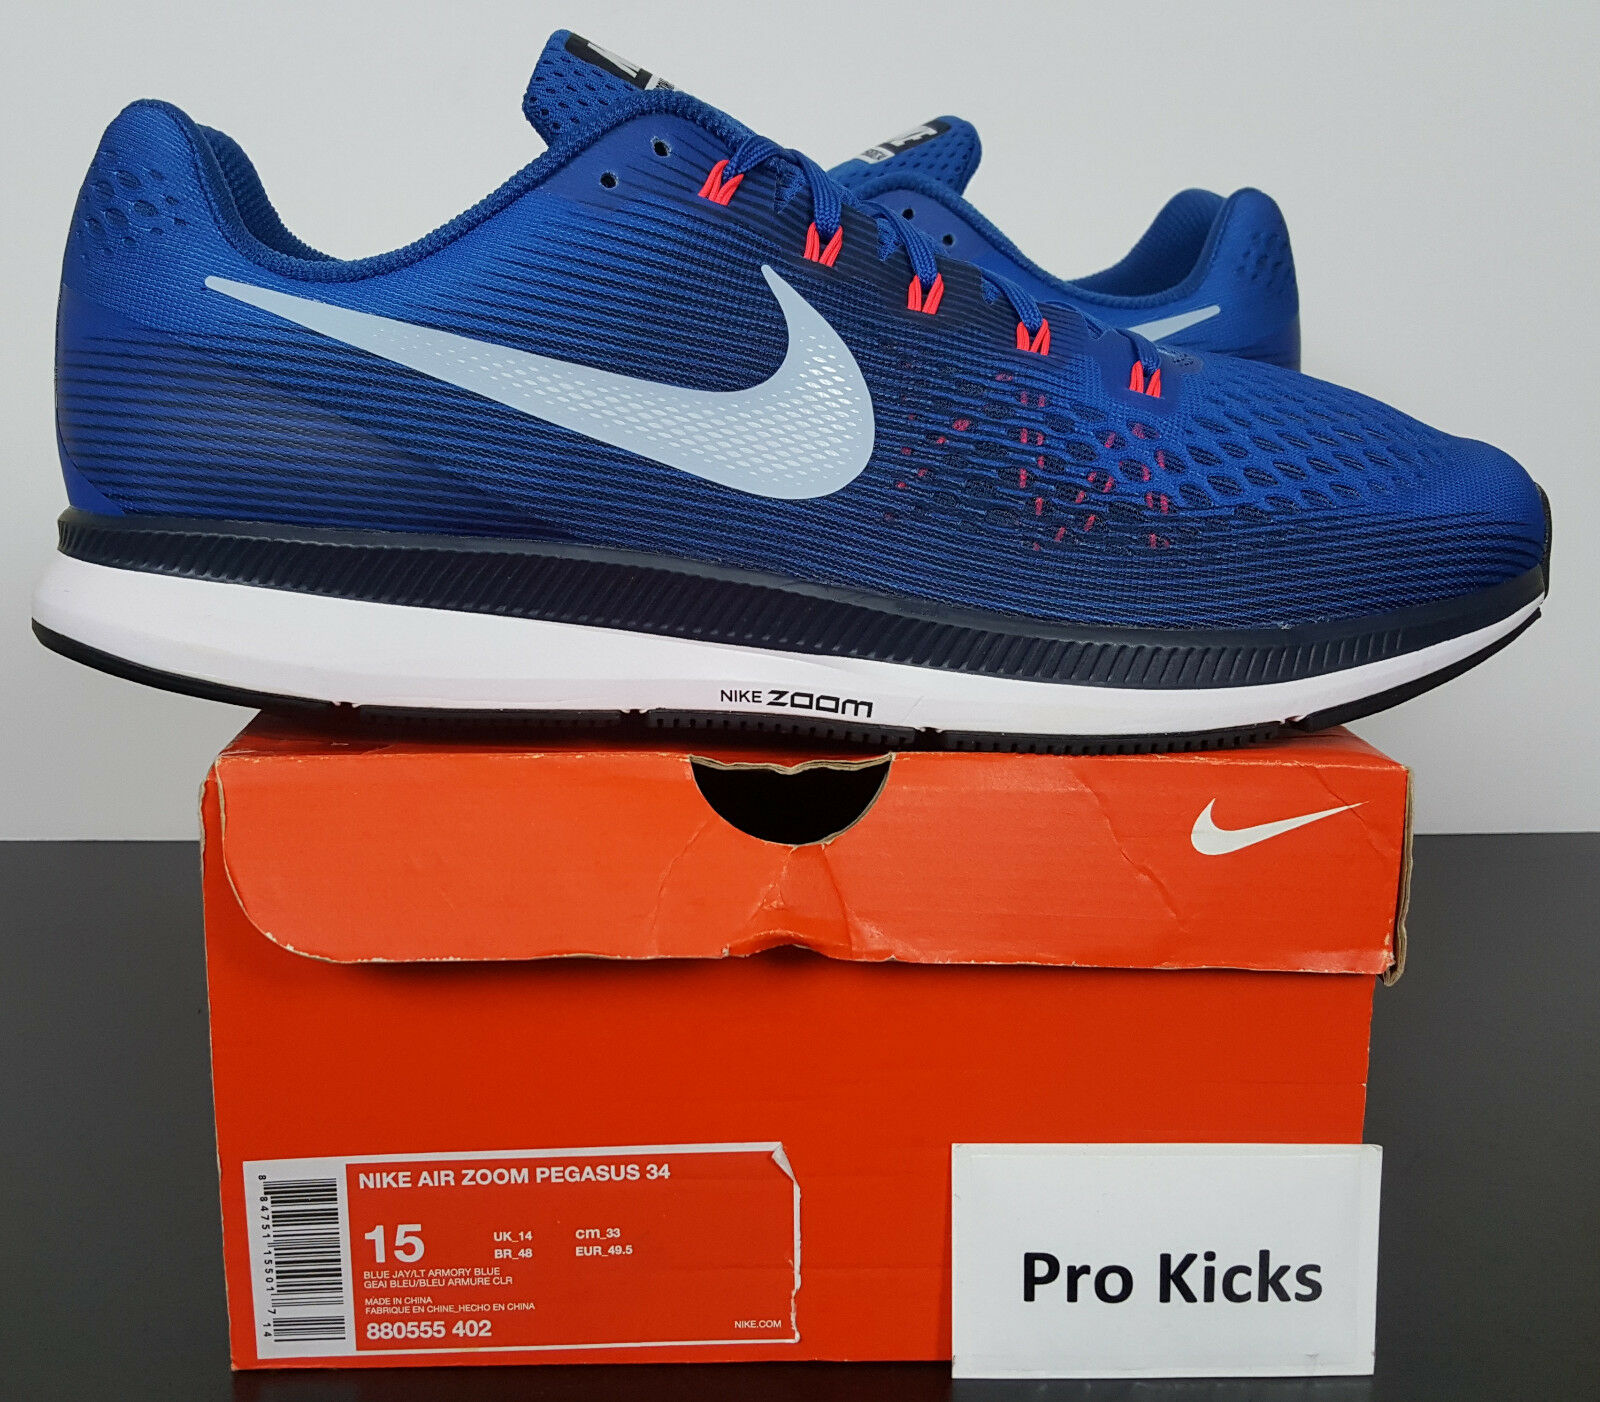 NIKE AIR ZOOM PEGASUS 34 RUNNING SHOES blueeE JAY ARMORY NEW 880555-402 (SIZE 15)